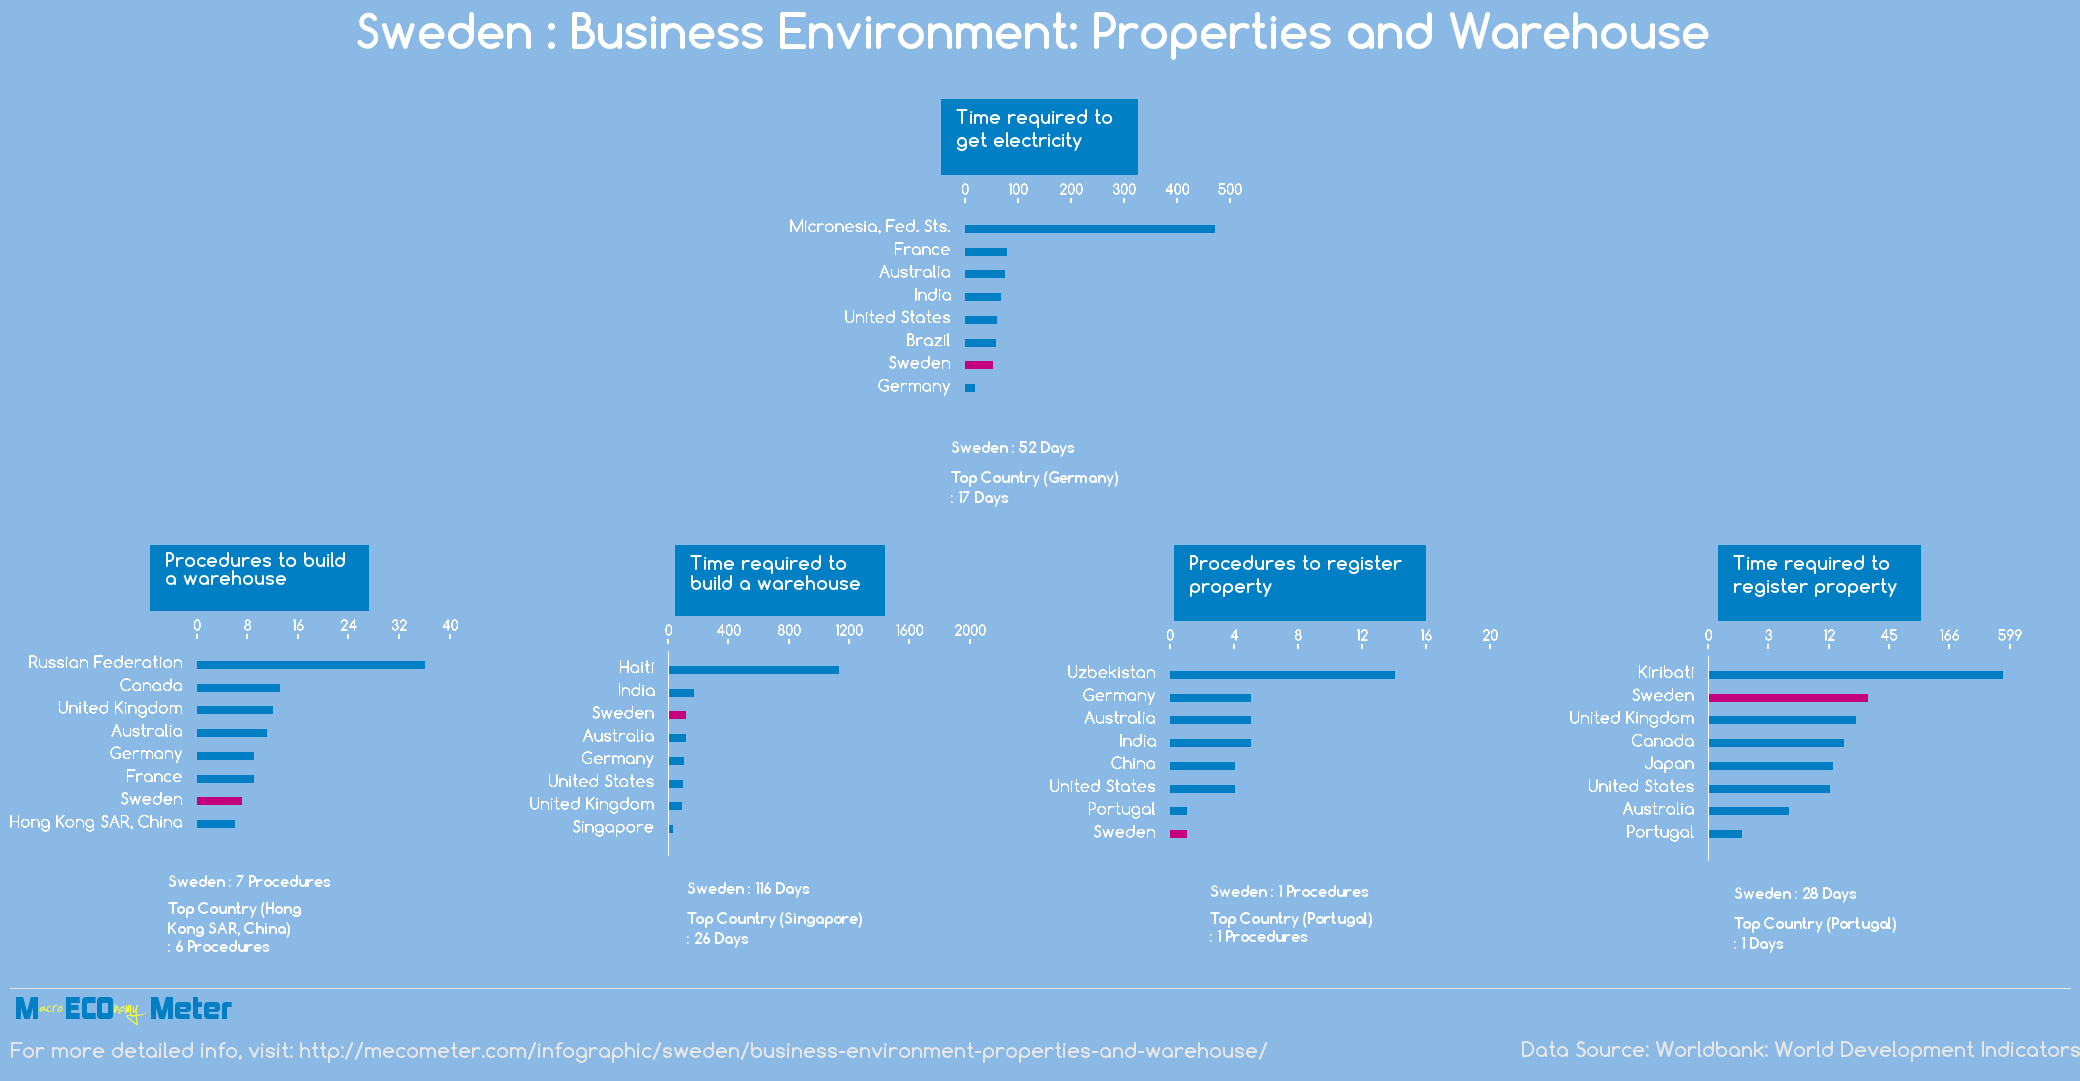 Sweden : Business Environment: Properties and Warehouse